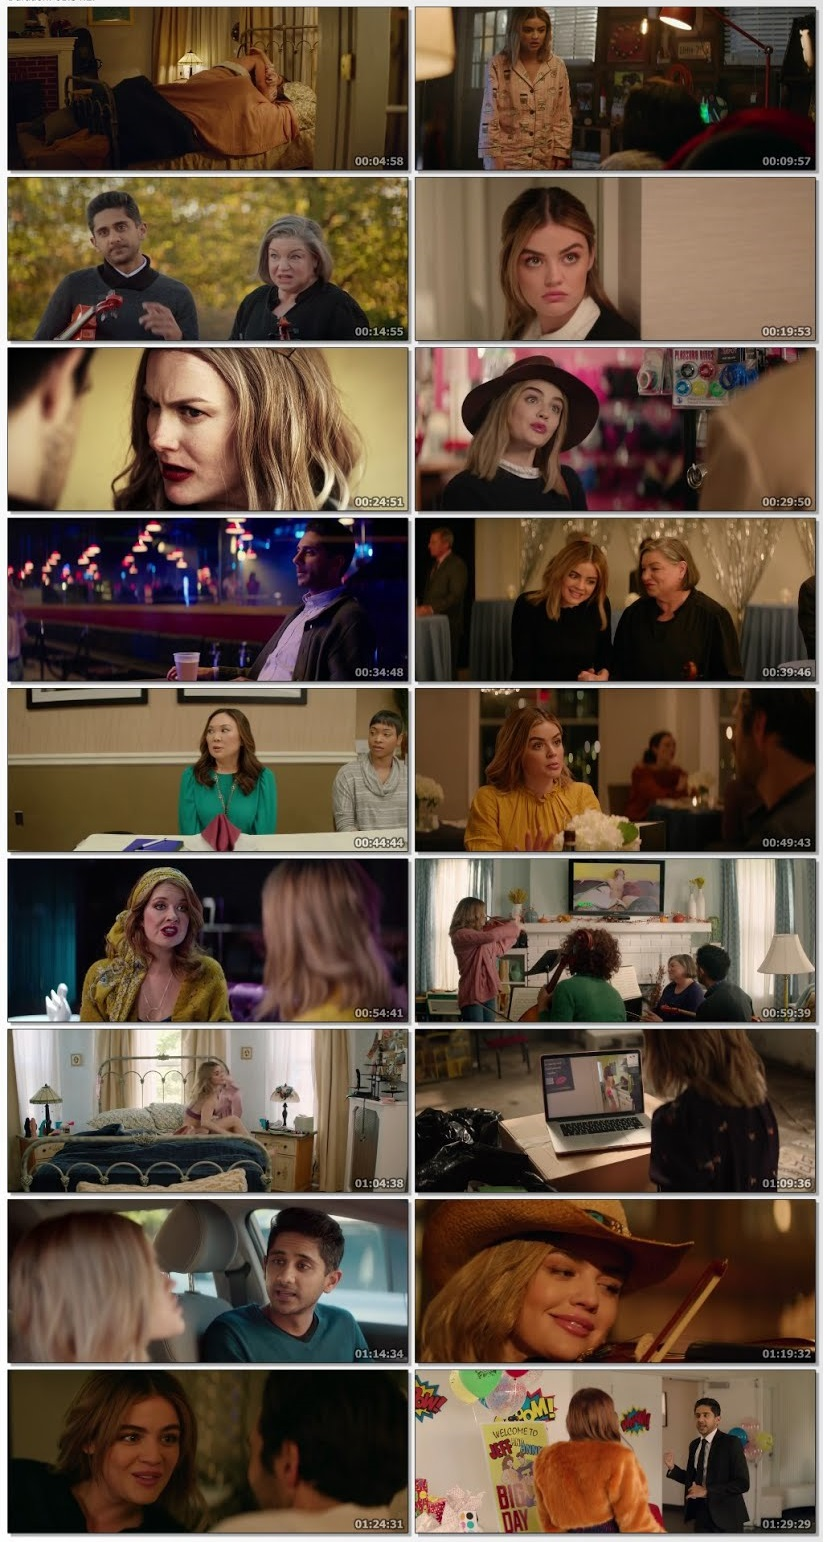 Download A Nice Girl Like You (2020) Hindi [Fan Dubbed Voice Over] + English 480p 300MB | 720p 500MB HDRip